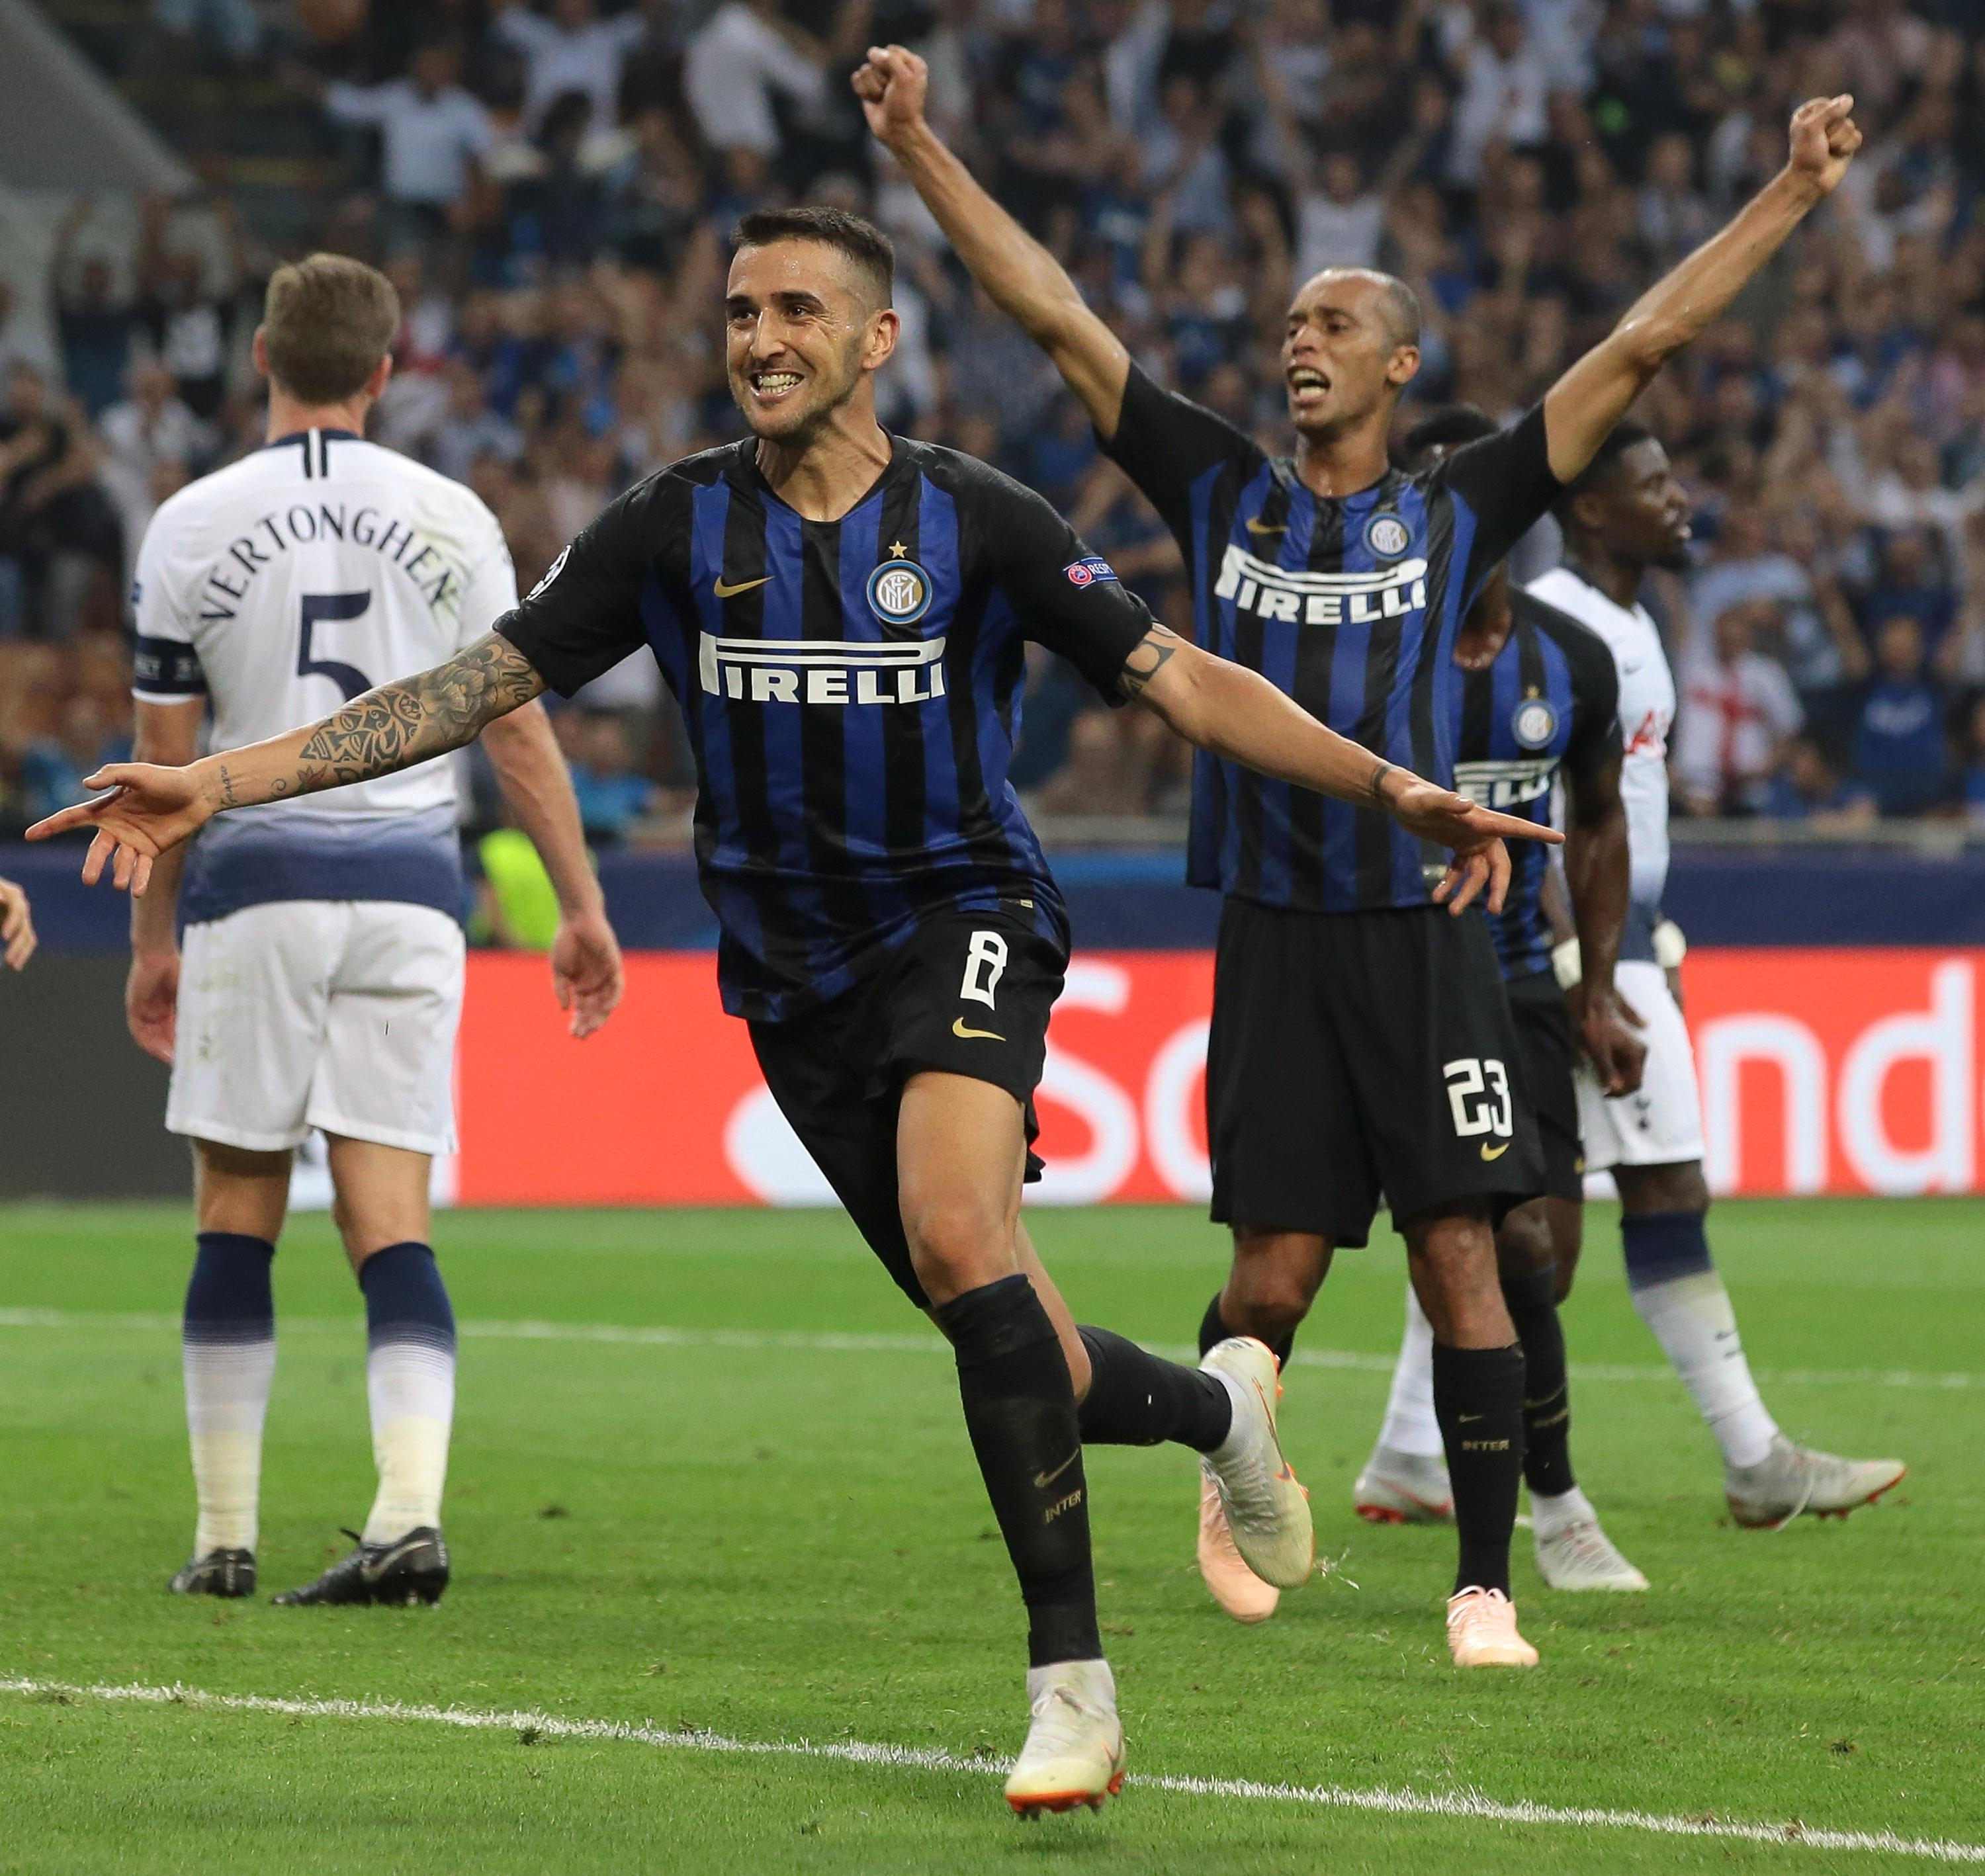 Inter Milan scored two late goals to snatch victory from the jaws of defeat